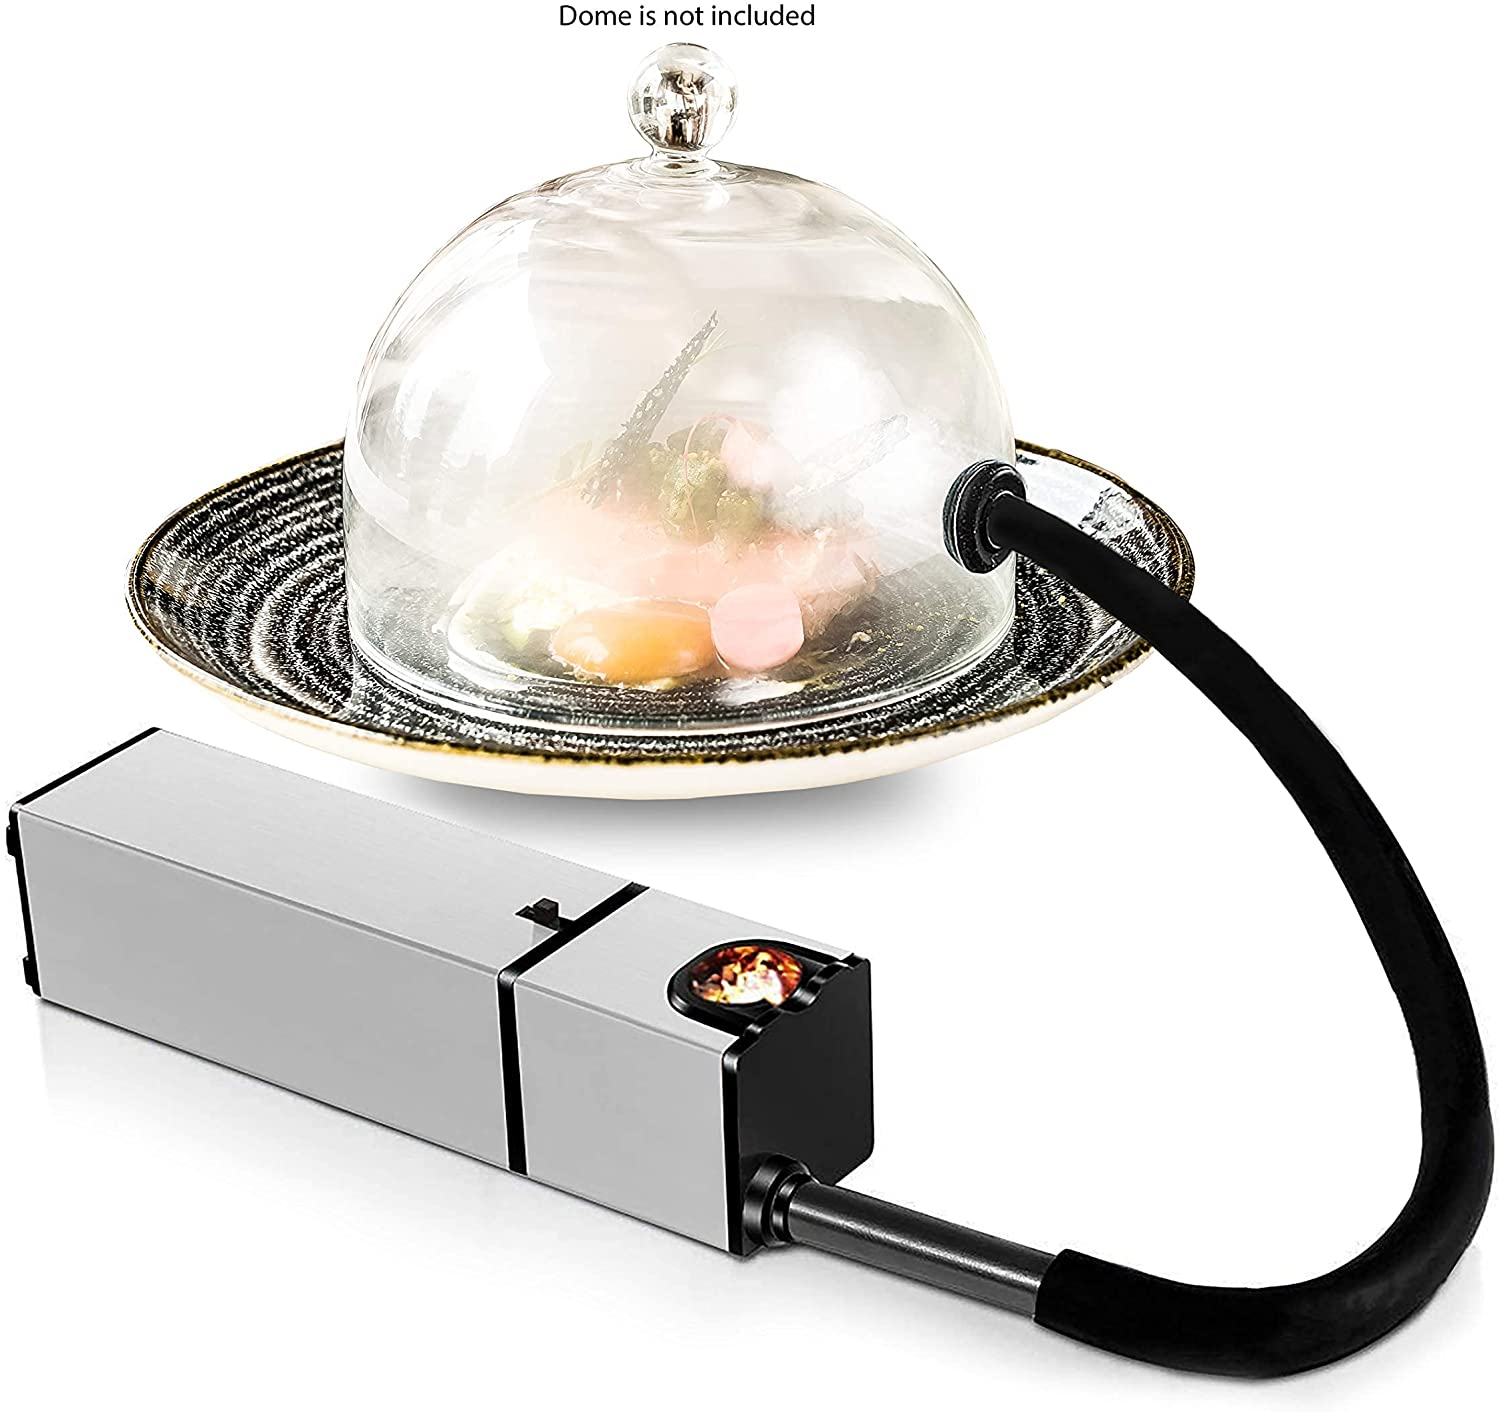 Chefhut Cocktail Smoker New mail order Mini Smoke Infuser Meat Drink Oakland Mall for Food